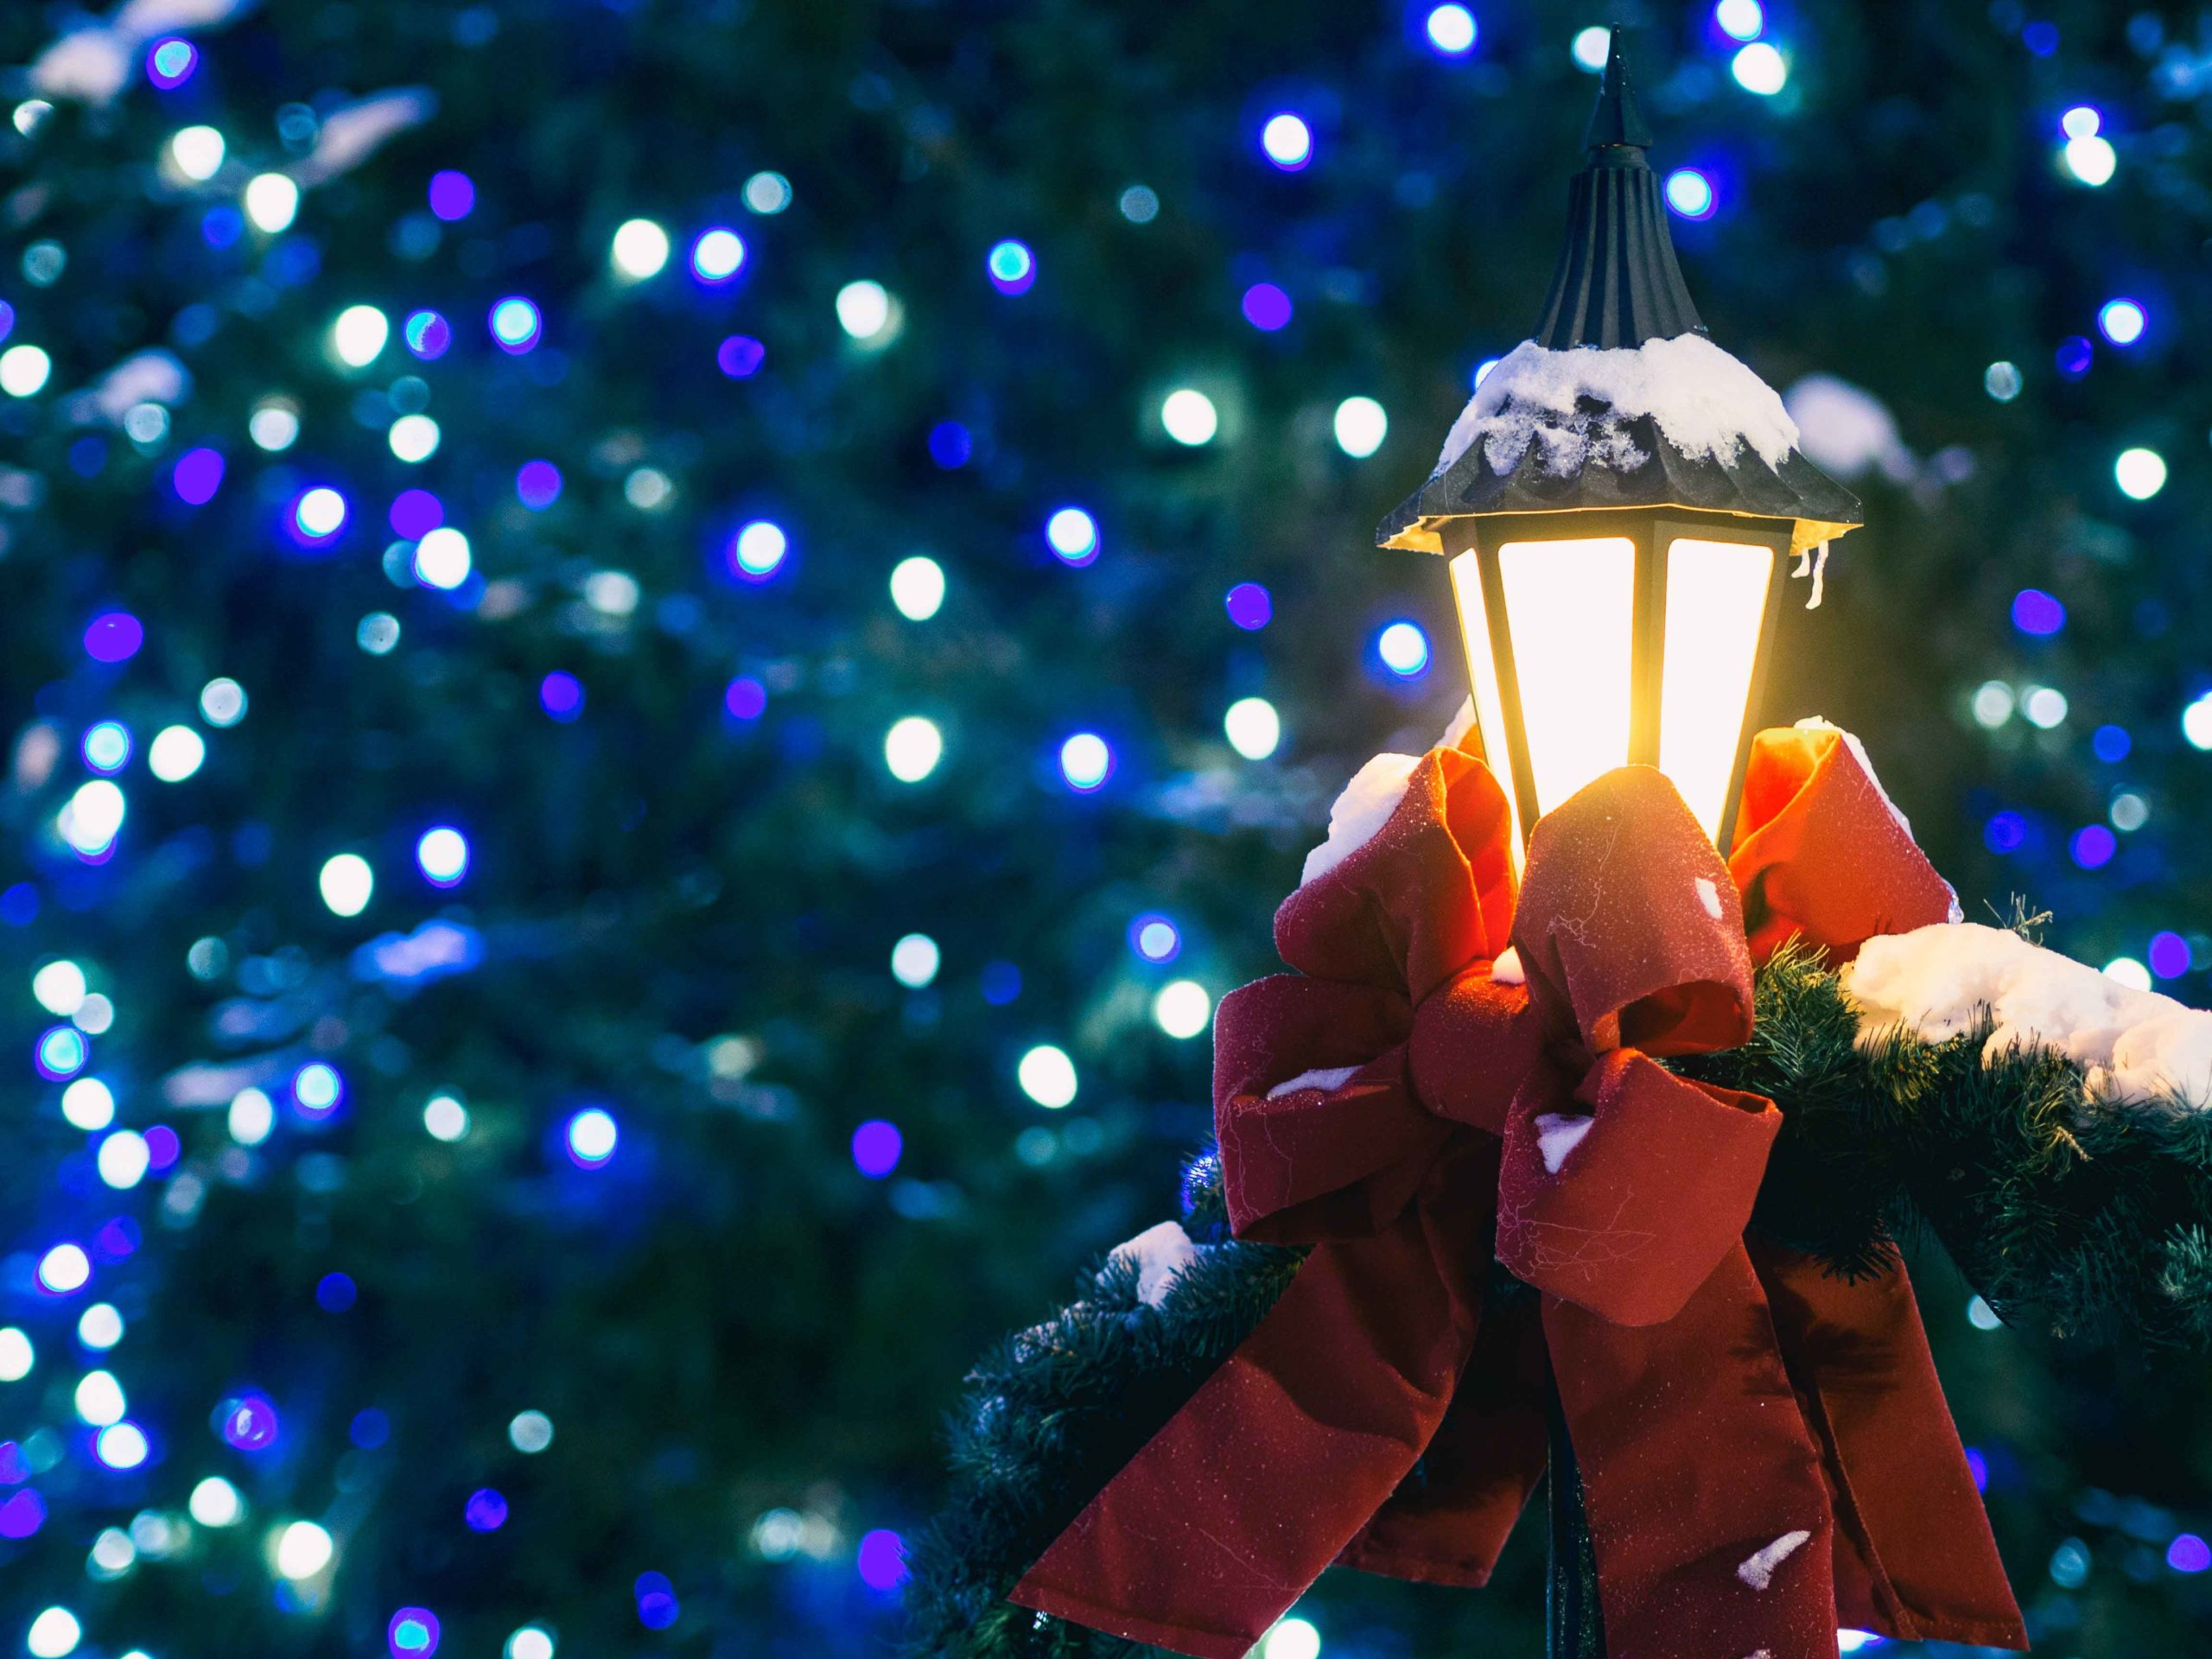 Night time lantern with holiday decorations